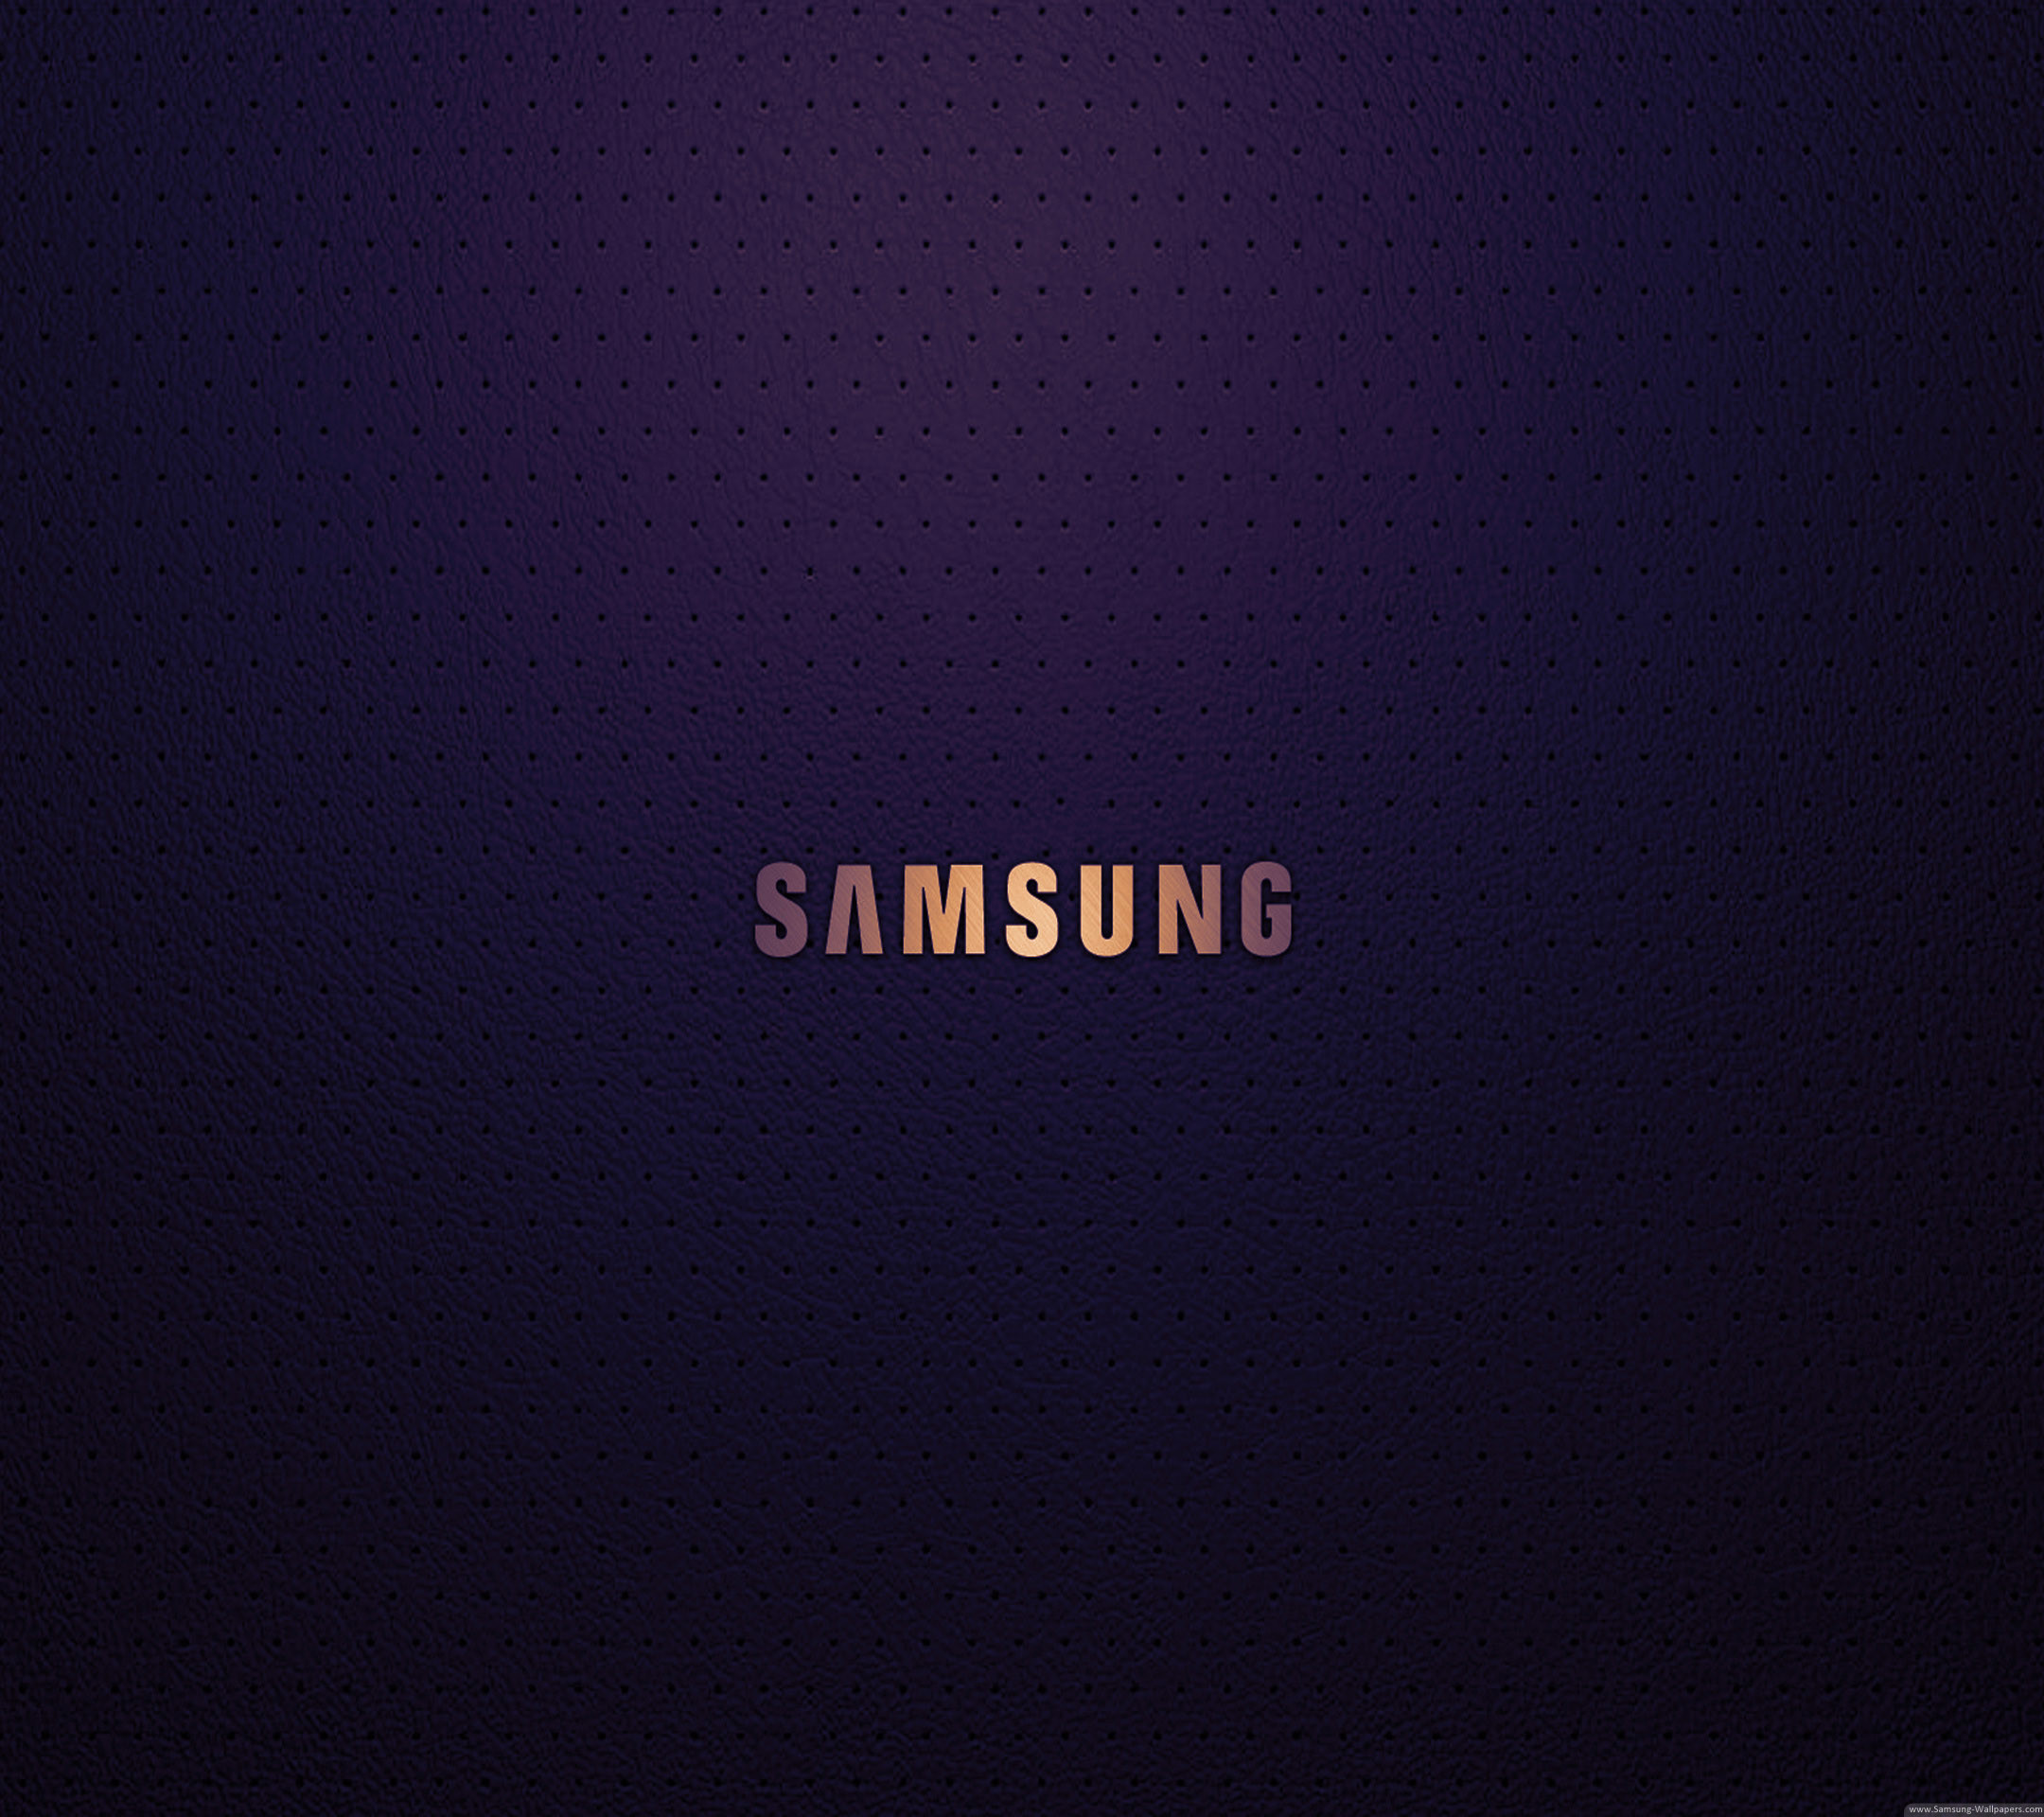 2160x1920 Samsung Logo Background Lock Screen Galaxy Samsung Logo Wallpaper Red 2160x1920 Wallpaper Teahub Io